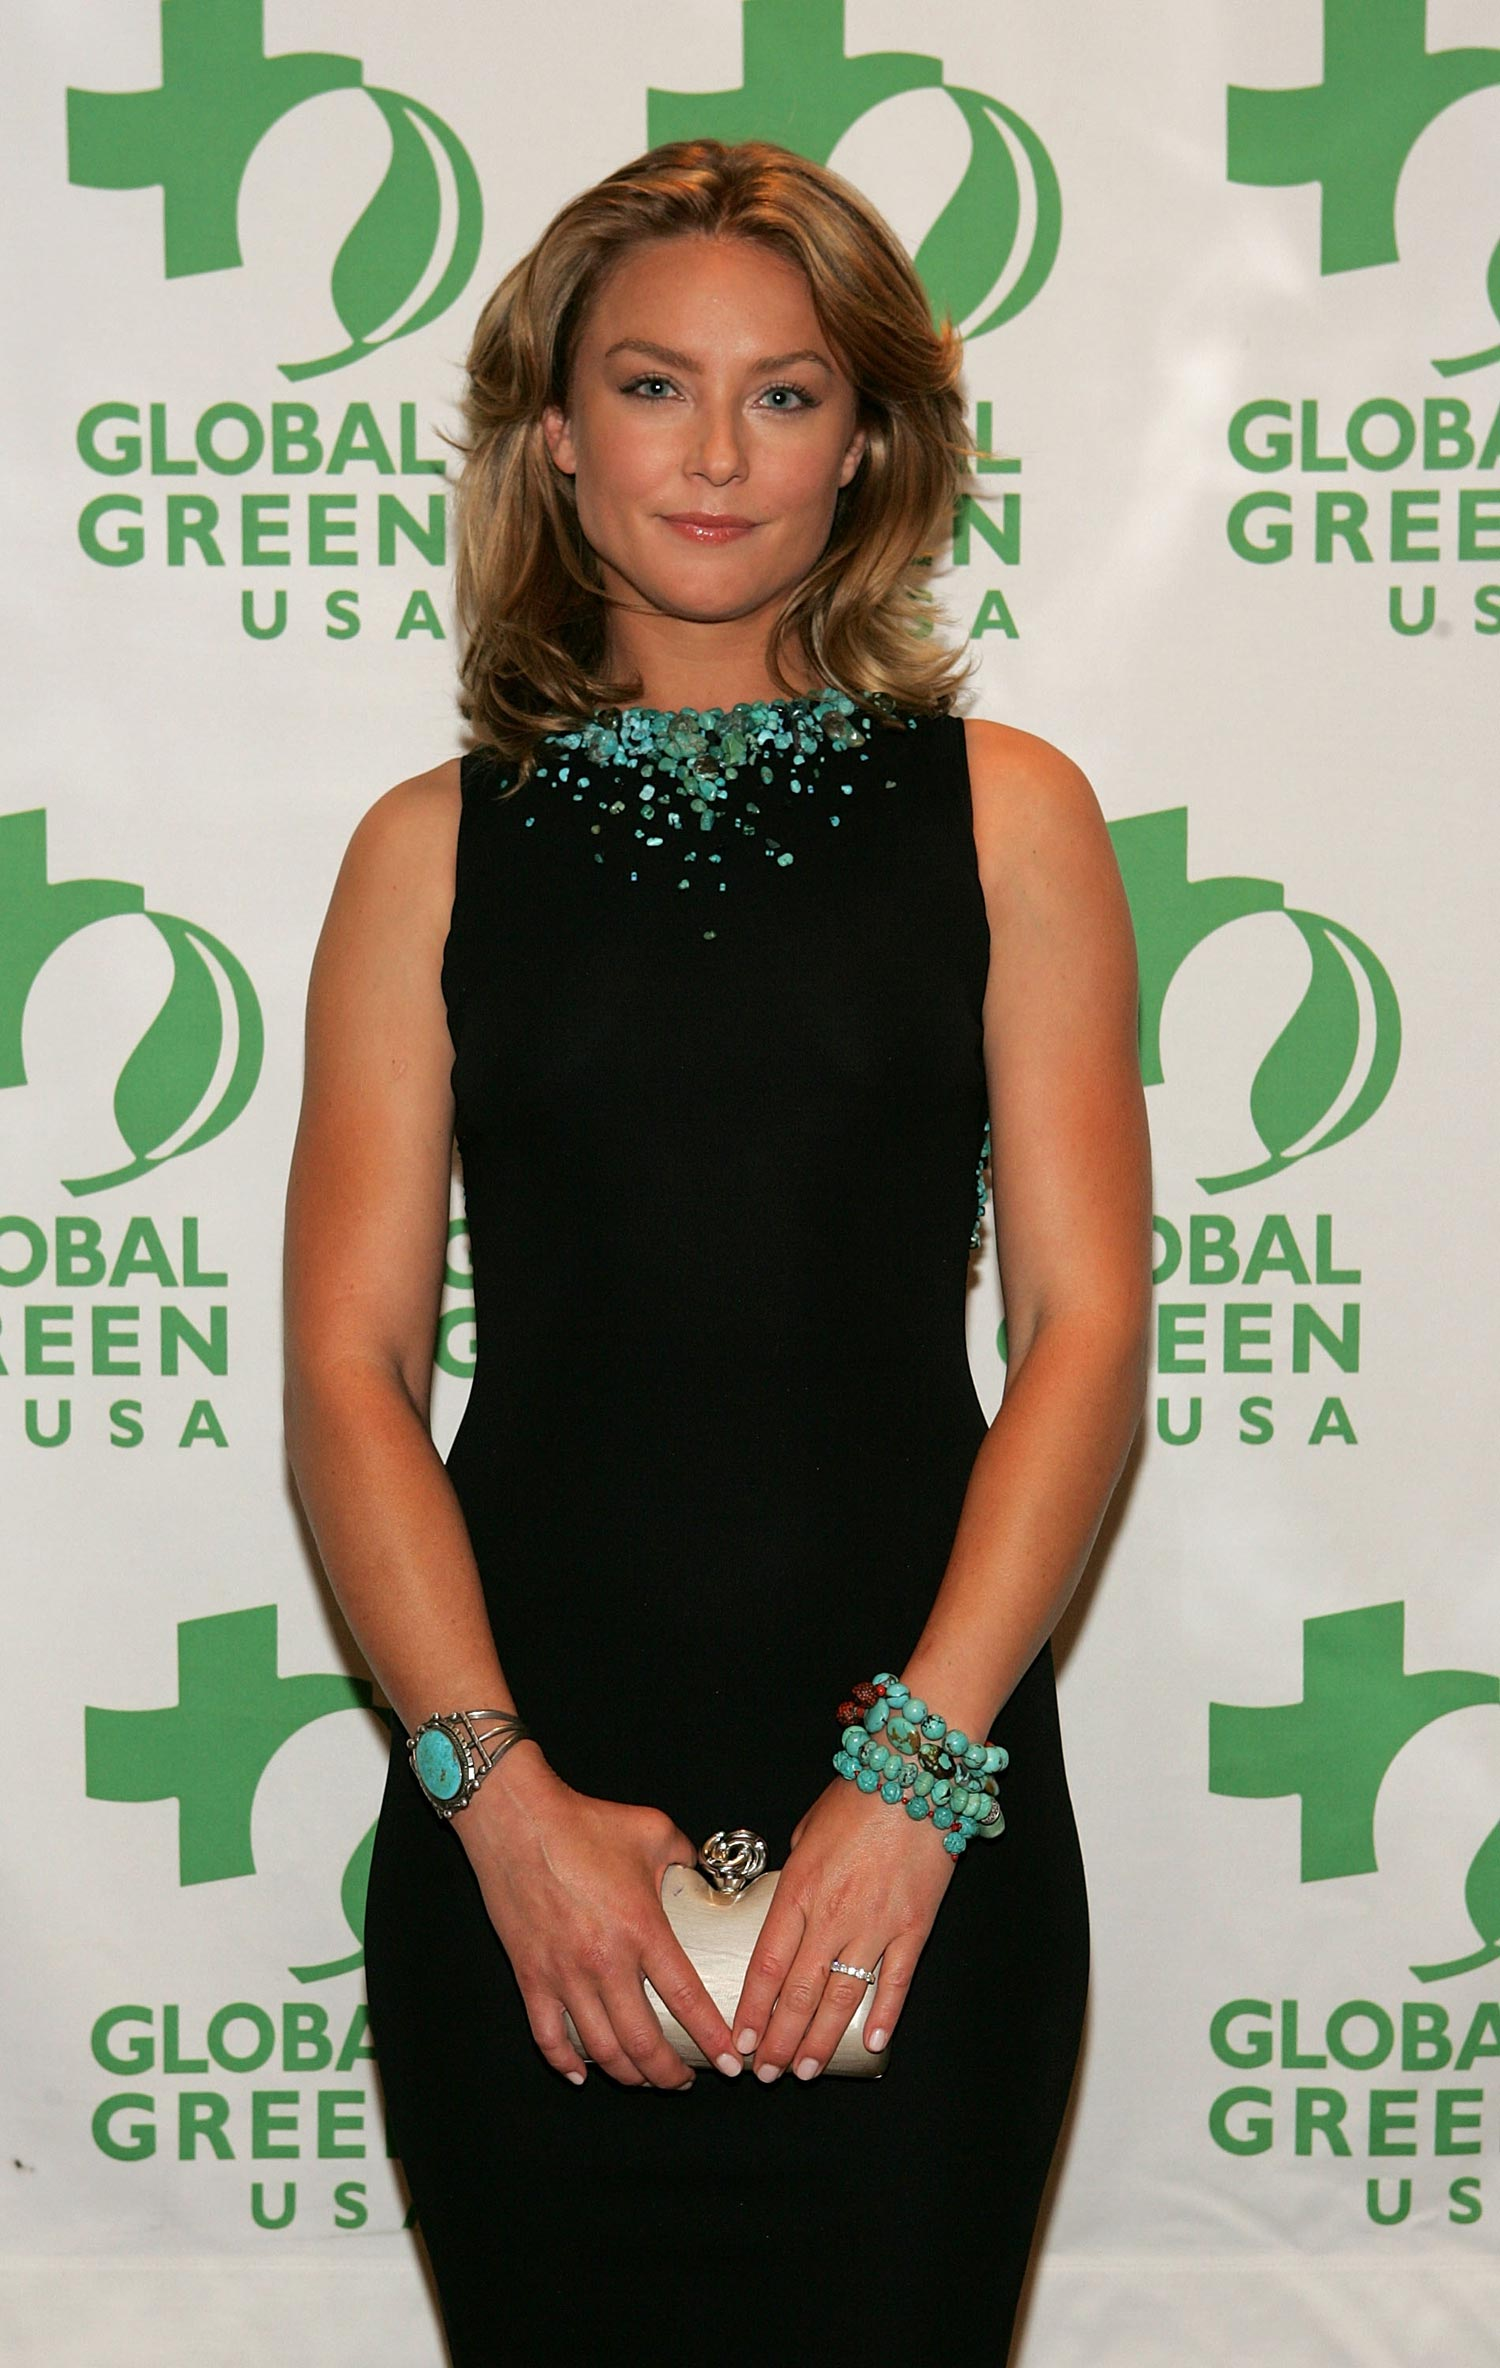 IMG/jpg/elisabeth-rohm-2007-green-cross-millenium-awards-hq-03-1500.jpg